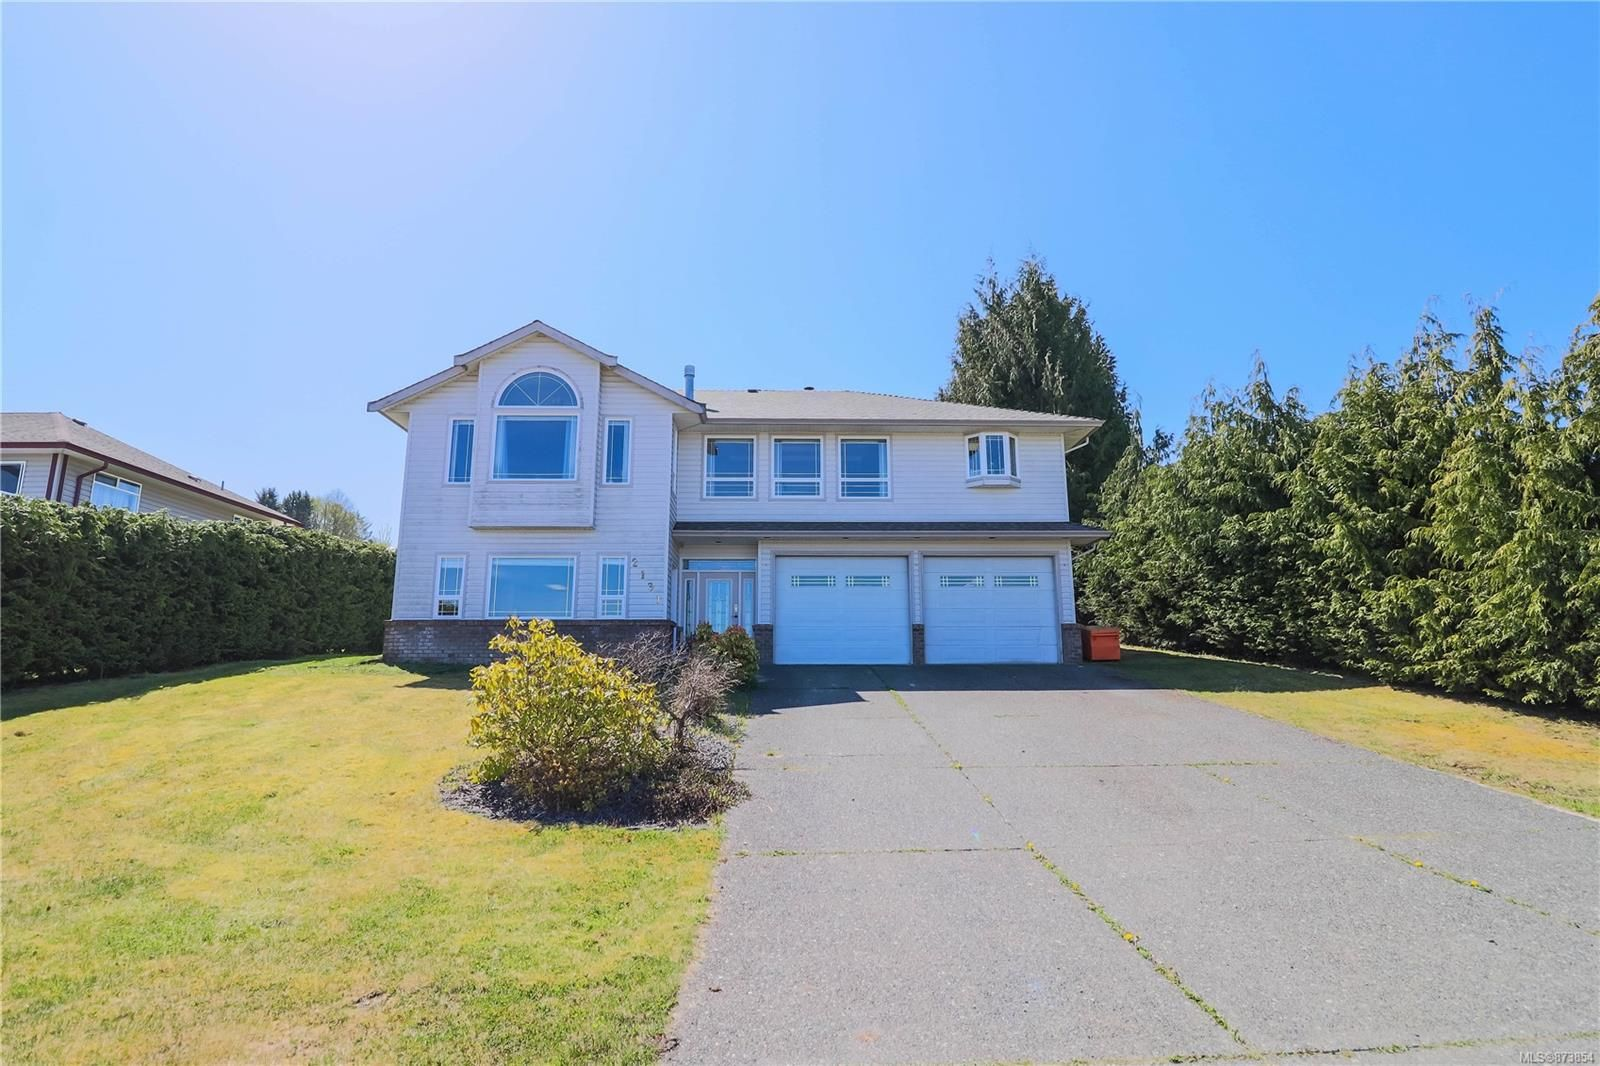 Main Photo: 2131 Northland Rd in : NI Port McNeill House for sale (North Island)  : MLS®# 873854